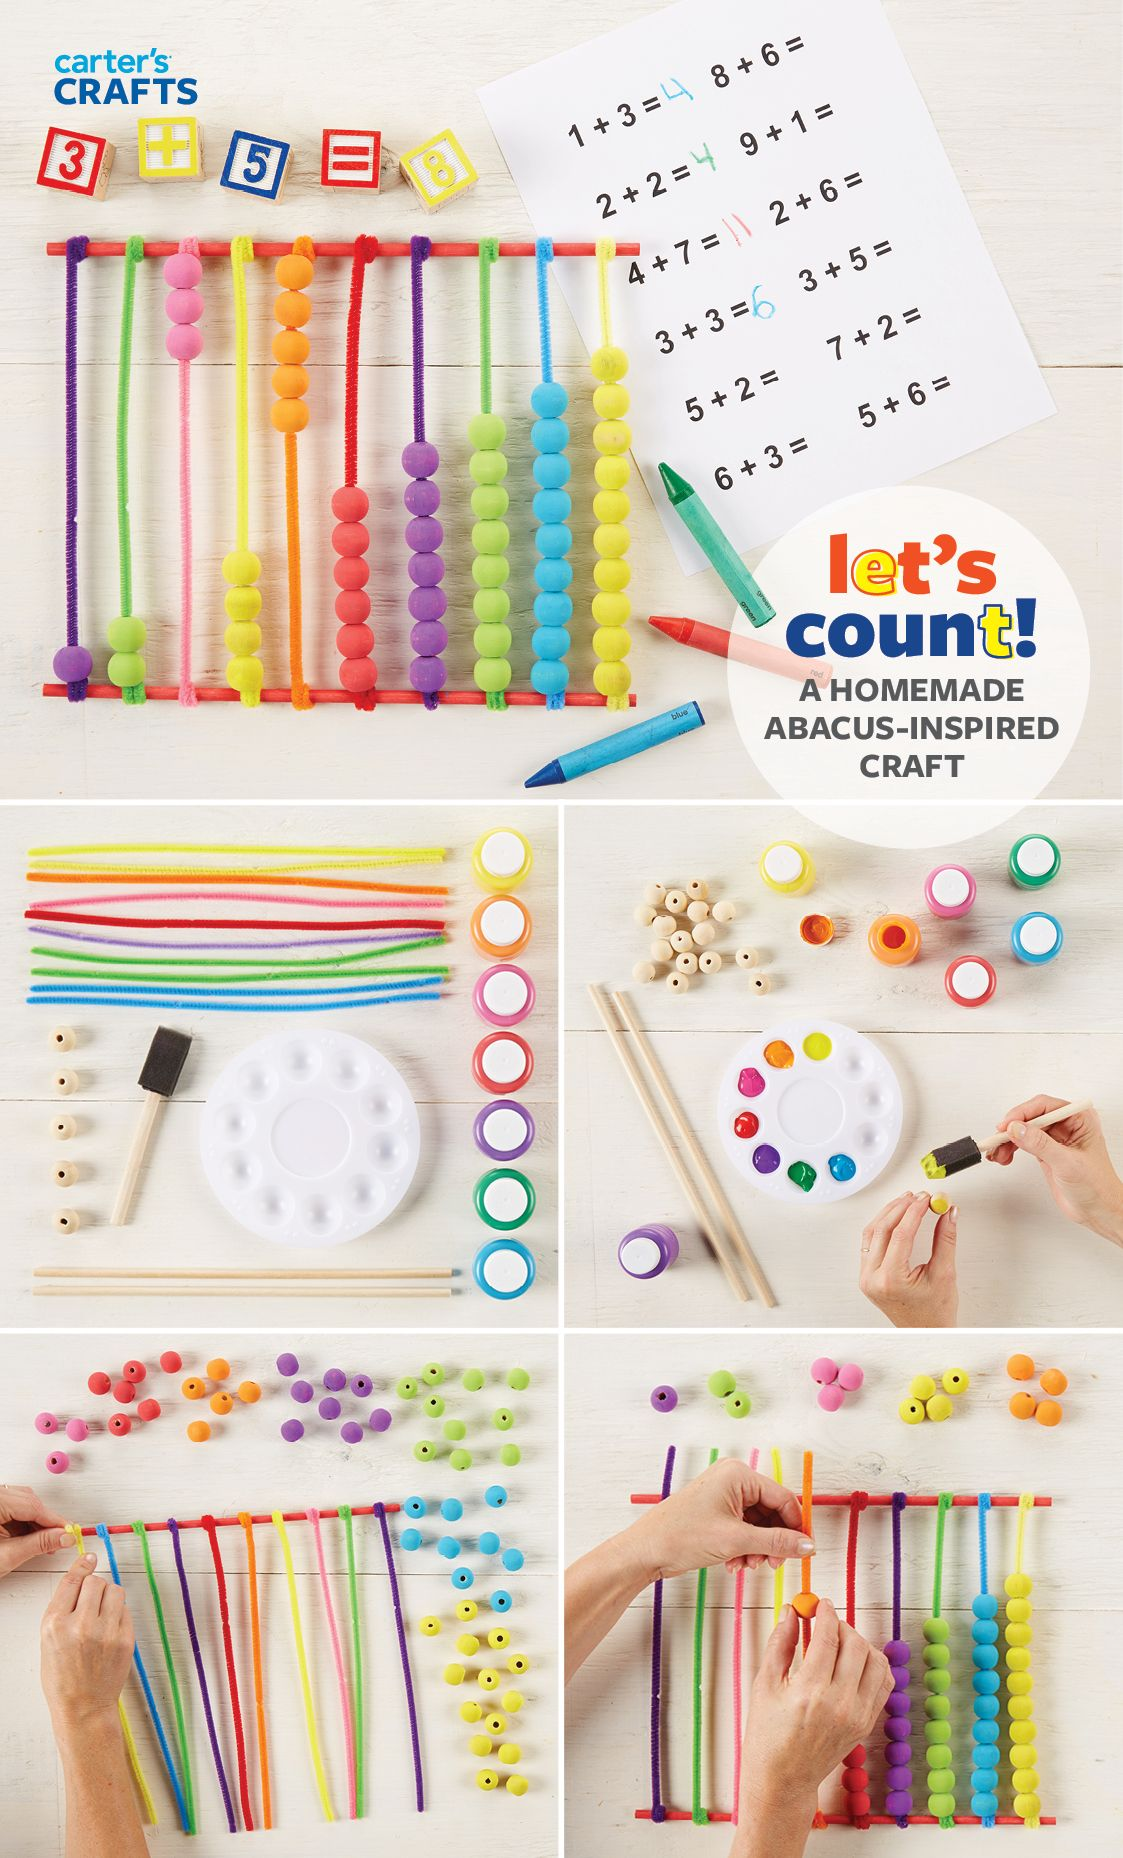 Let S Count A Homemade Abacus Inspired Craft Is Great For Practicing Math Skills Fine Motor Skills And Color Recognition Crafts Abacus Math Abacus [ 1858 x 1123 Pixel ]